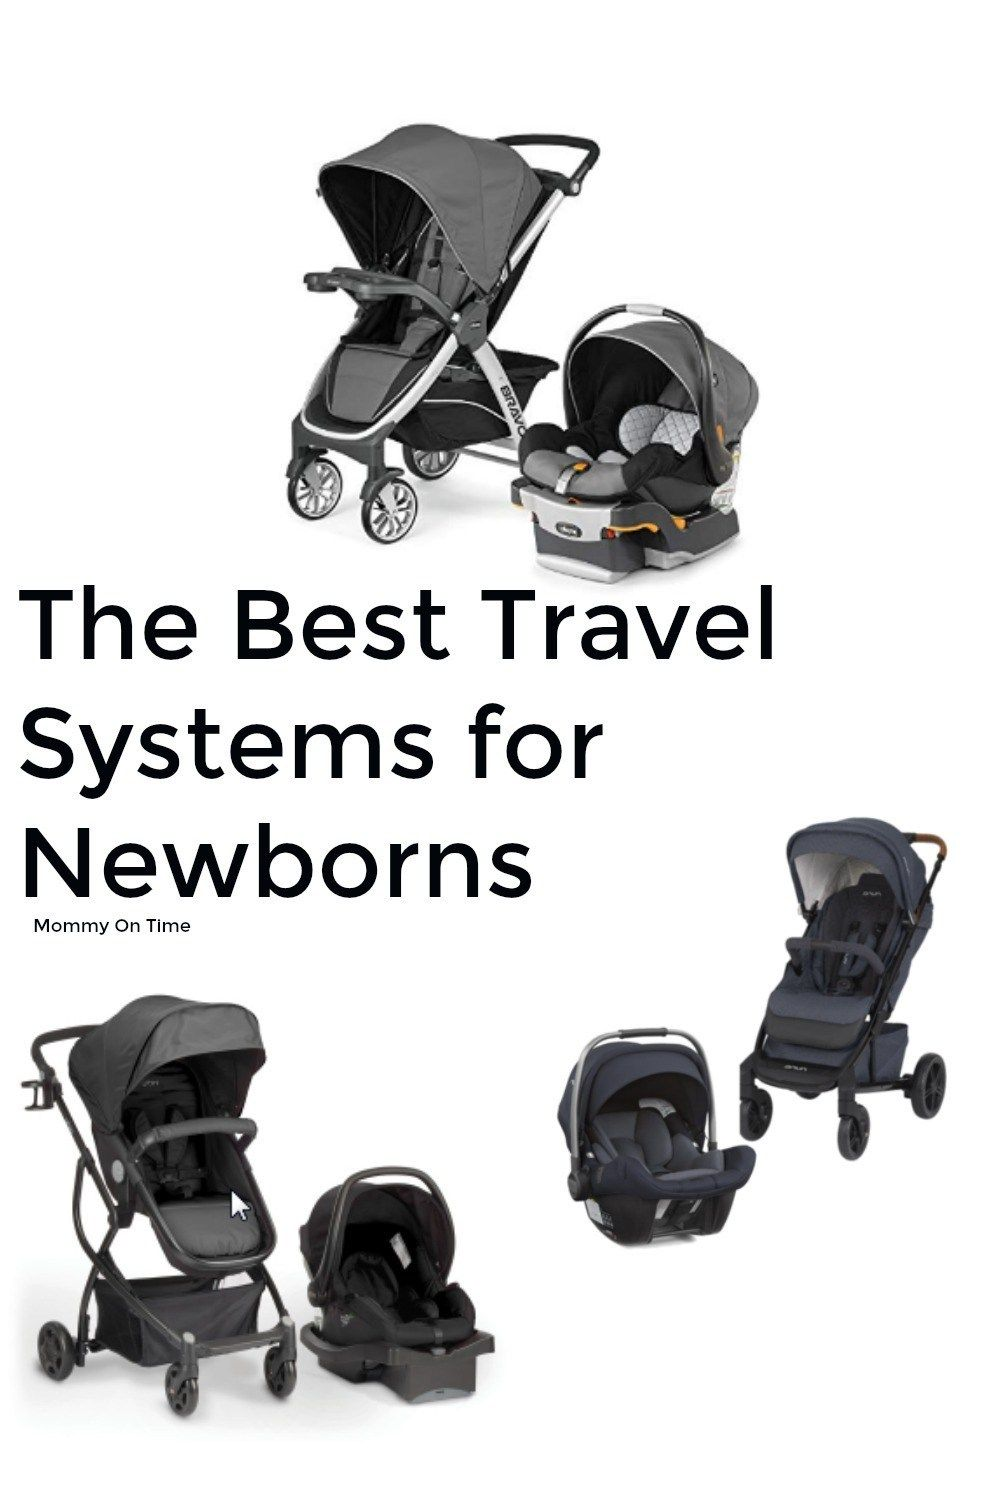 6 Best Travel Systems for Your Newborn 2020 | Travel ...